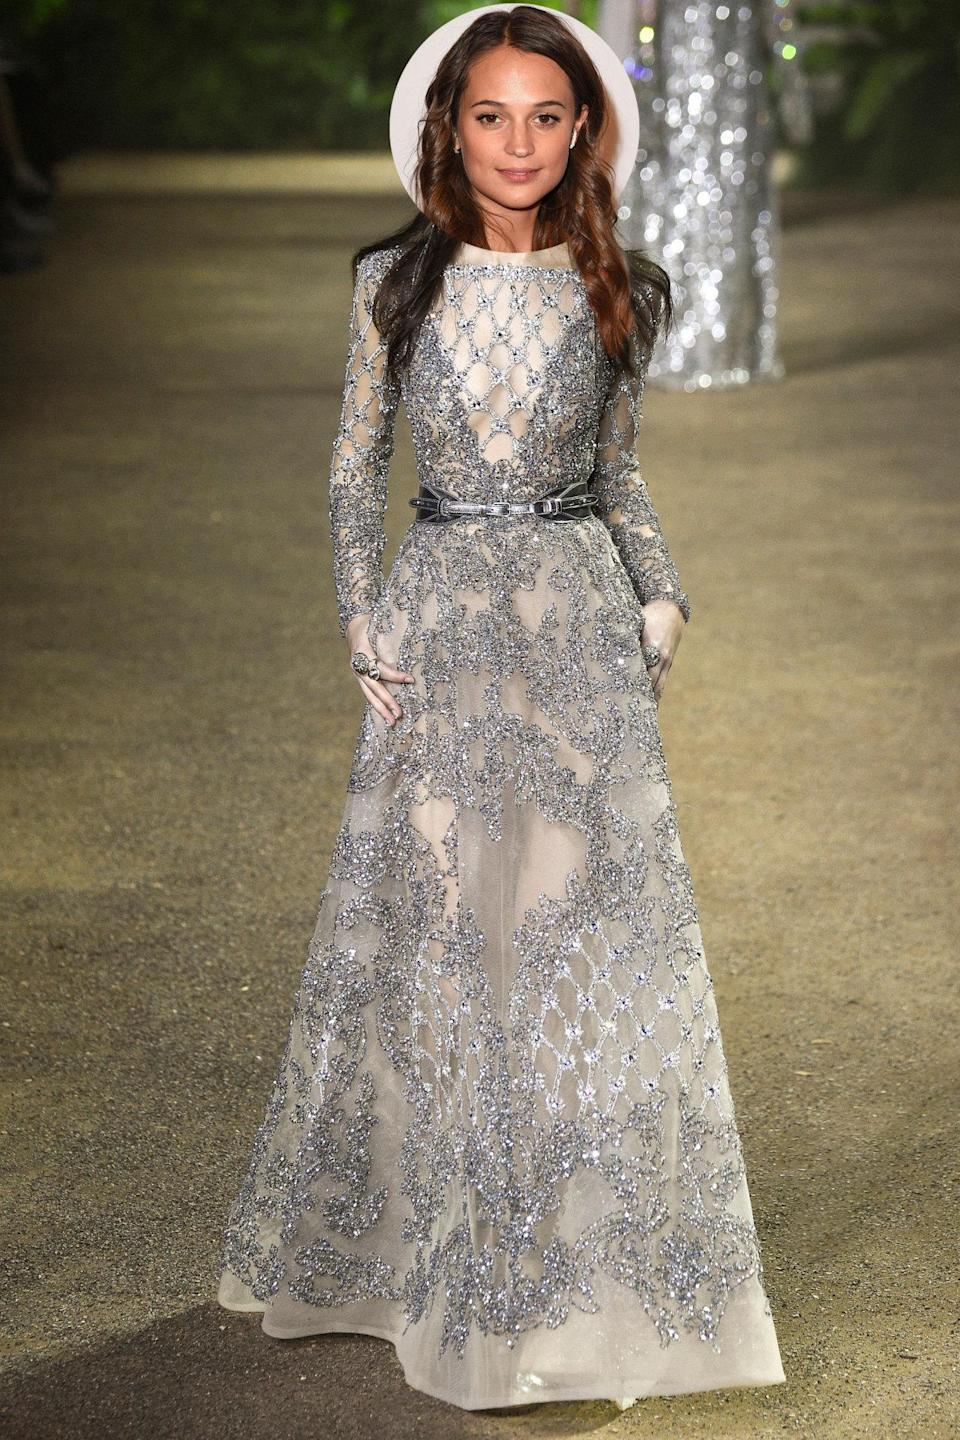 <p>Chances are that the Swedish actress will hit the red carpet in Louis Vuitton — but if it were up to us, she'd wear this glittery gown by Elie Saab Couture.</p>